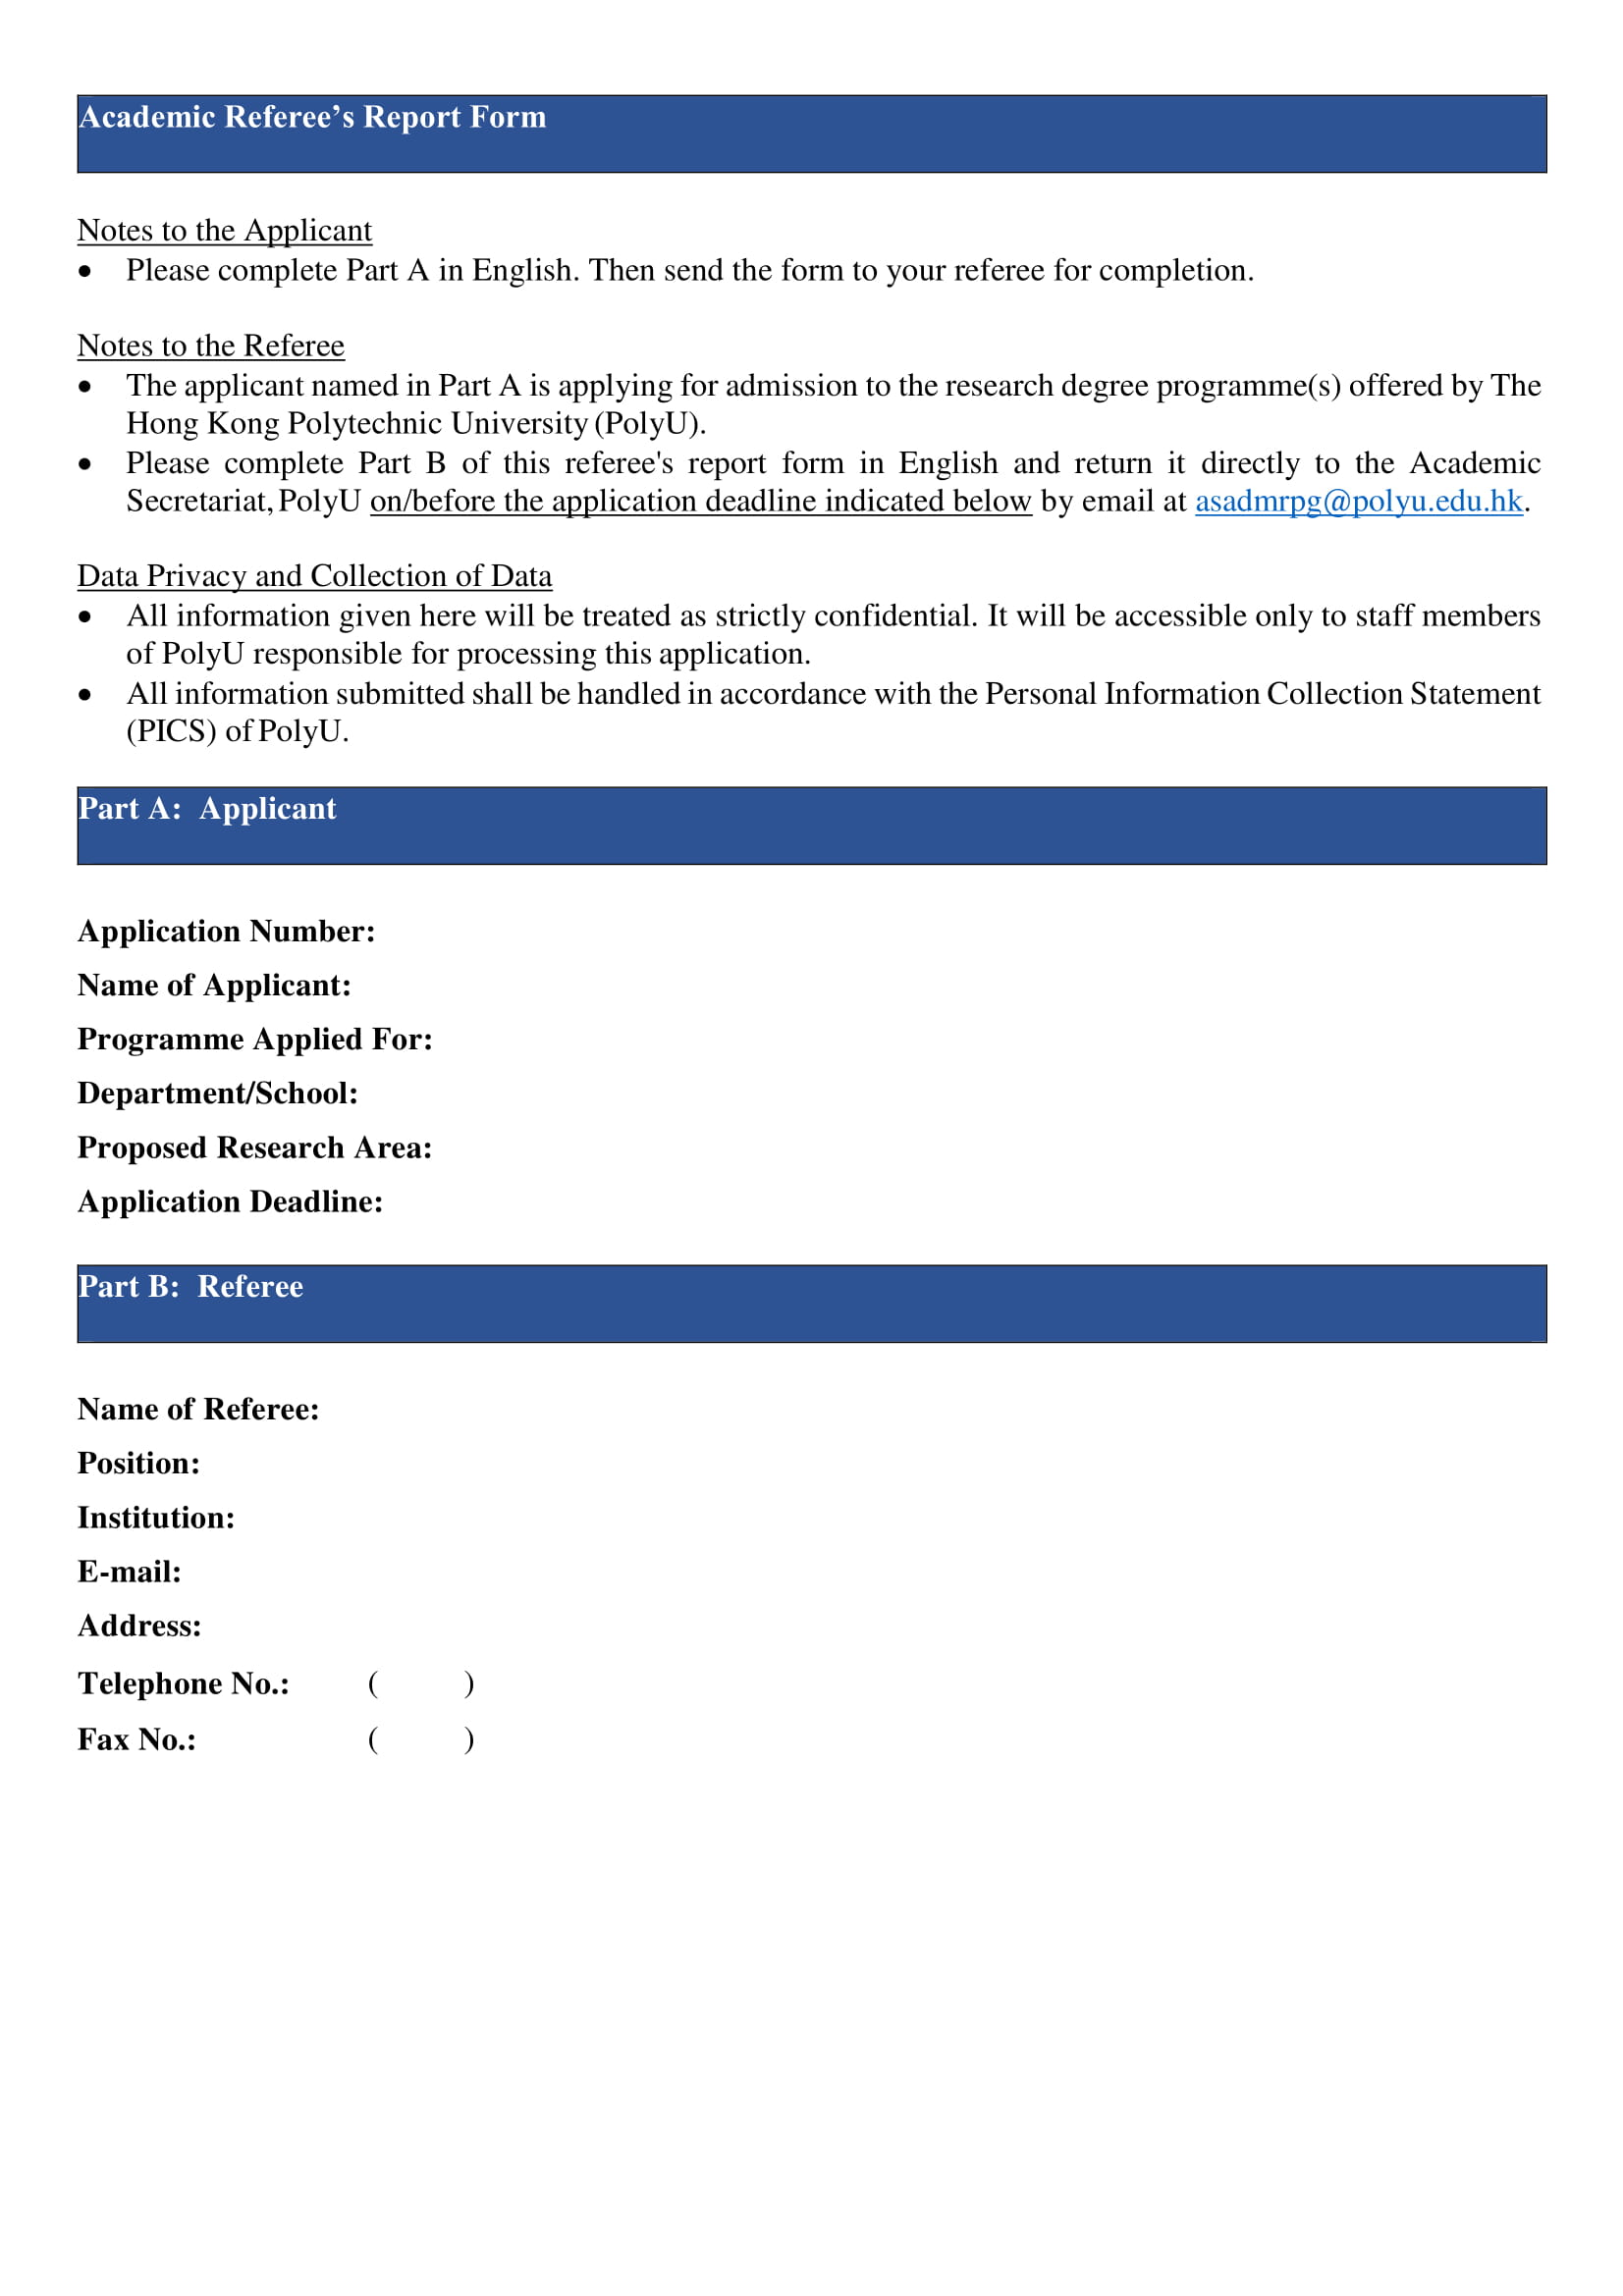 fillable academic referee's report form 1